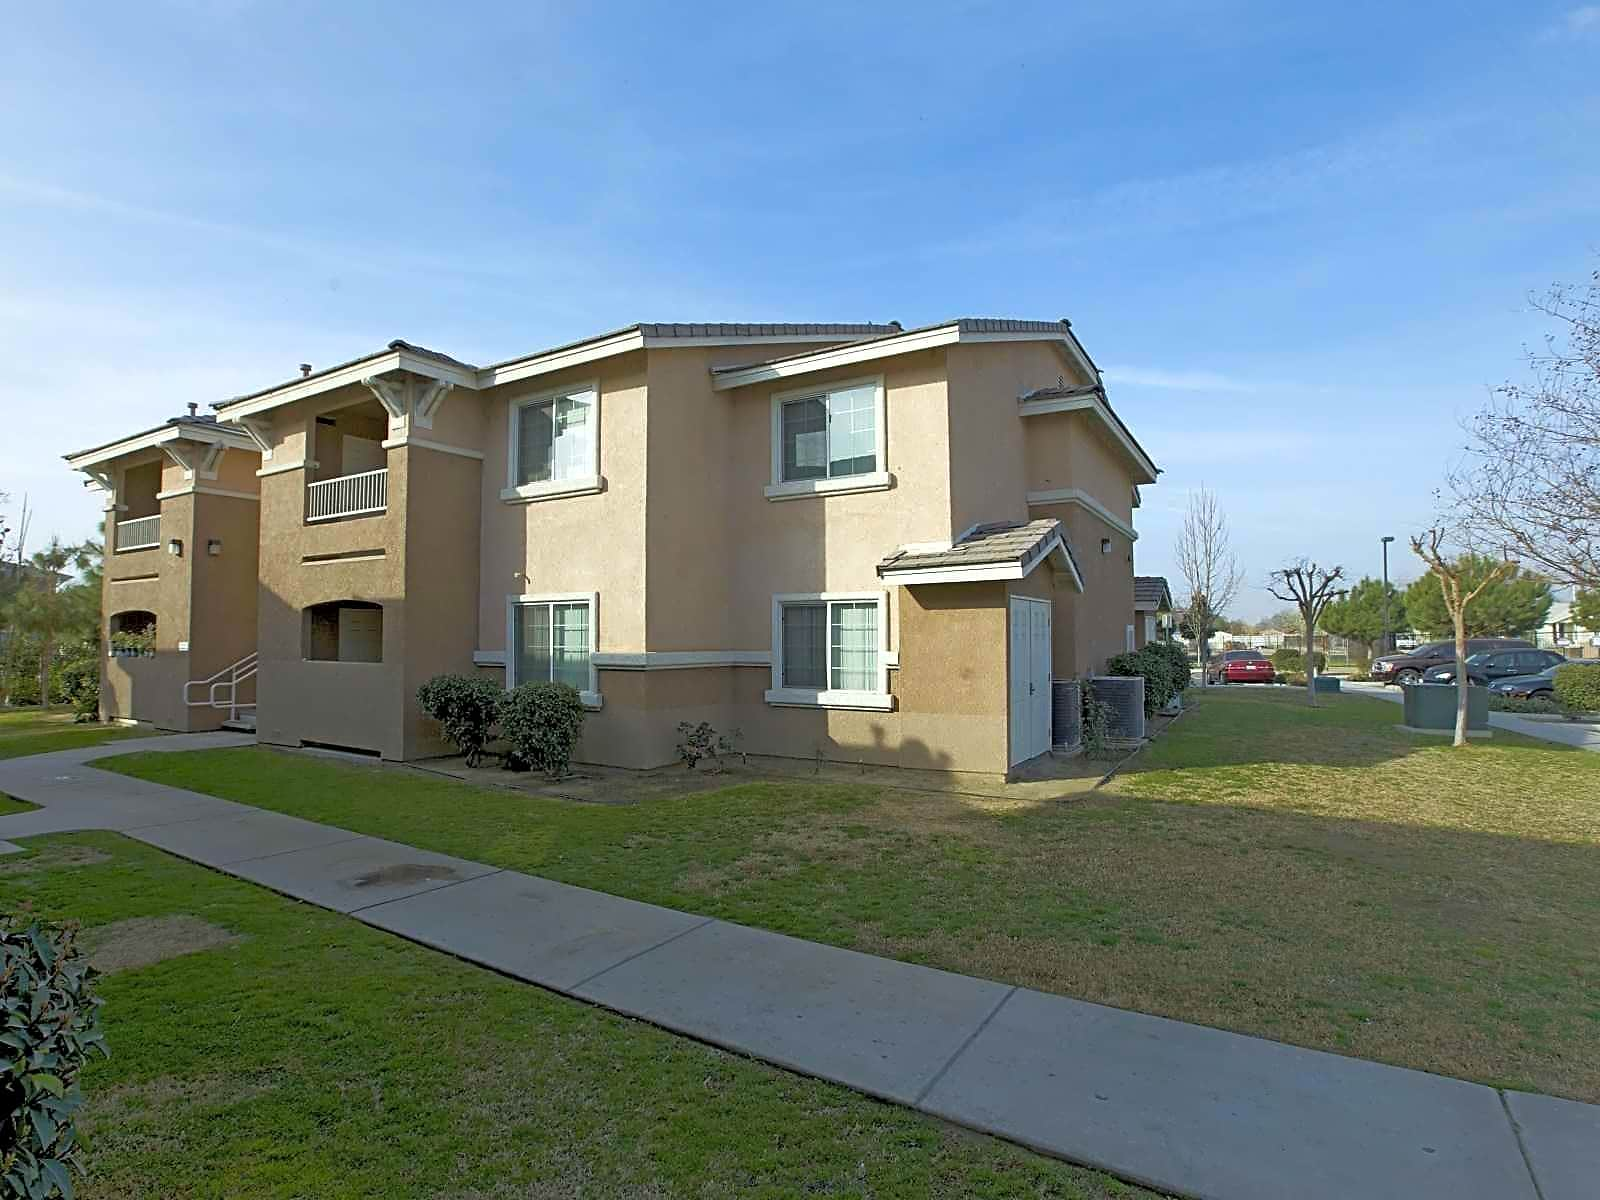 Photo: Bakersfield Apartment for Rent - $389.00 / month; 4 Bd & 2 Ba